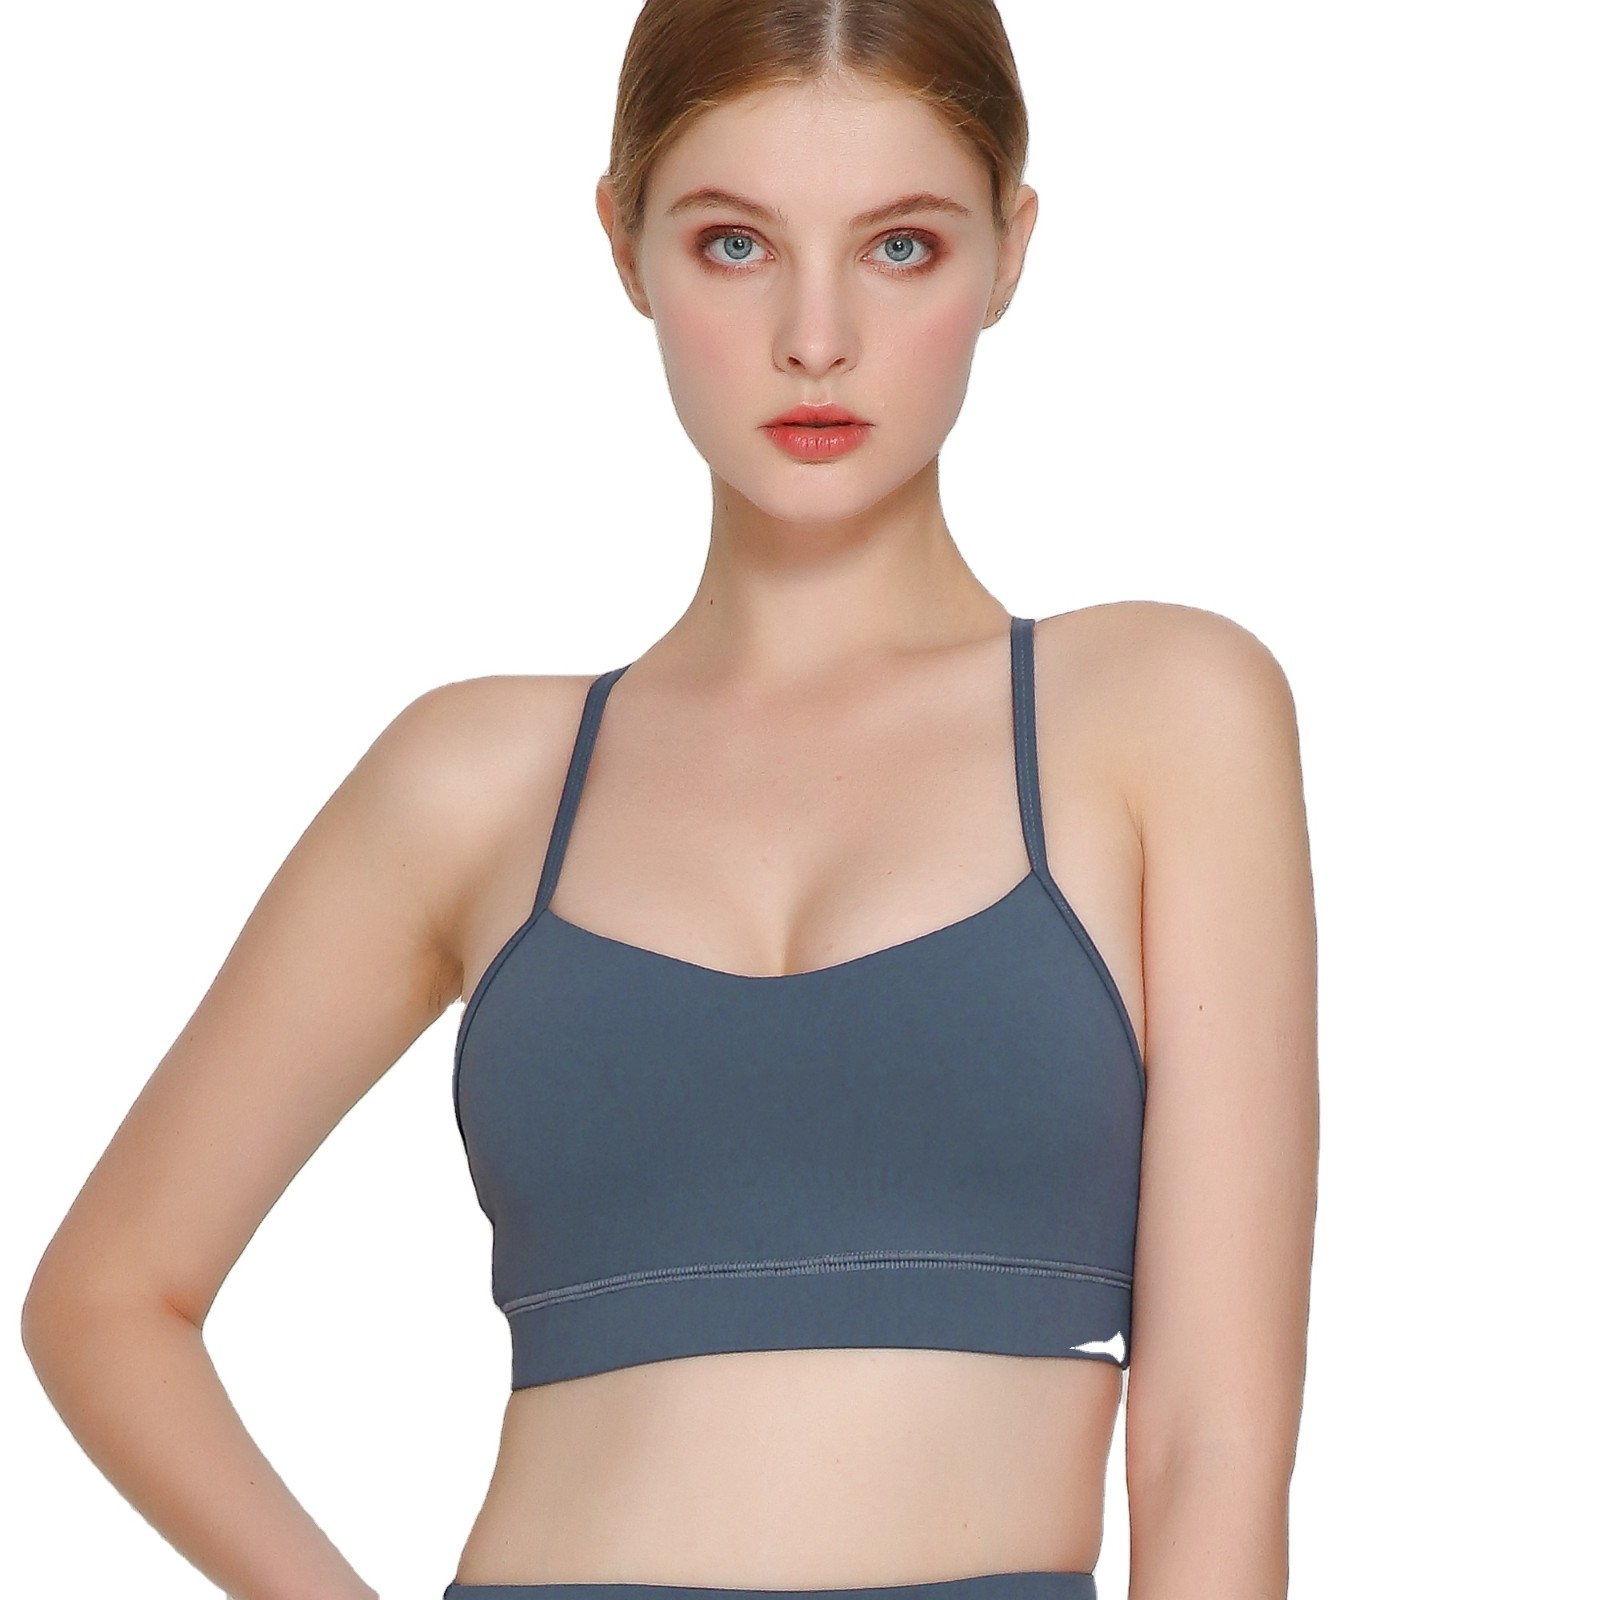 product-High Quality Workout Sportswear Yoga Bra Top Activewear for Women-Ruiteng-img